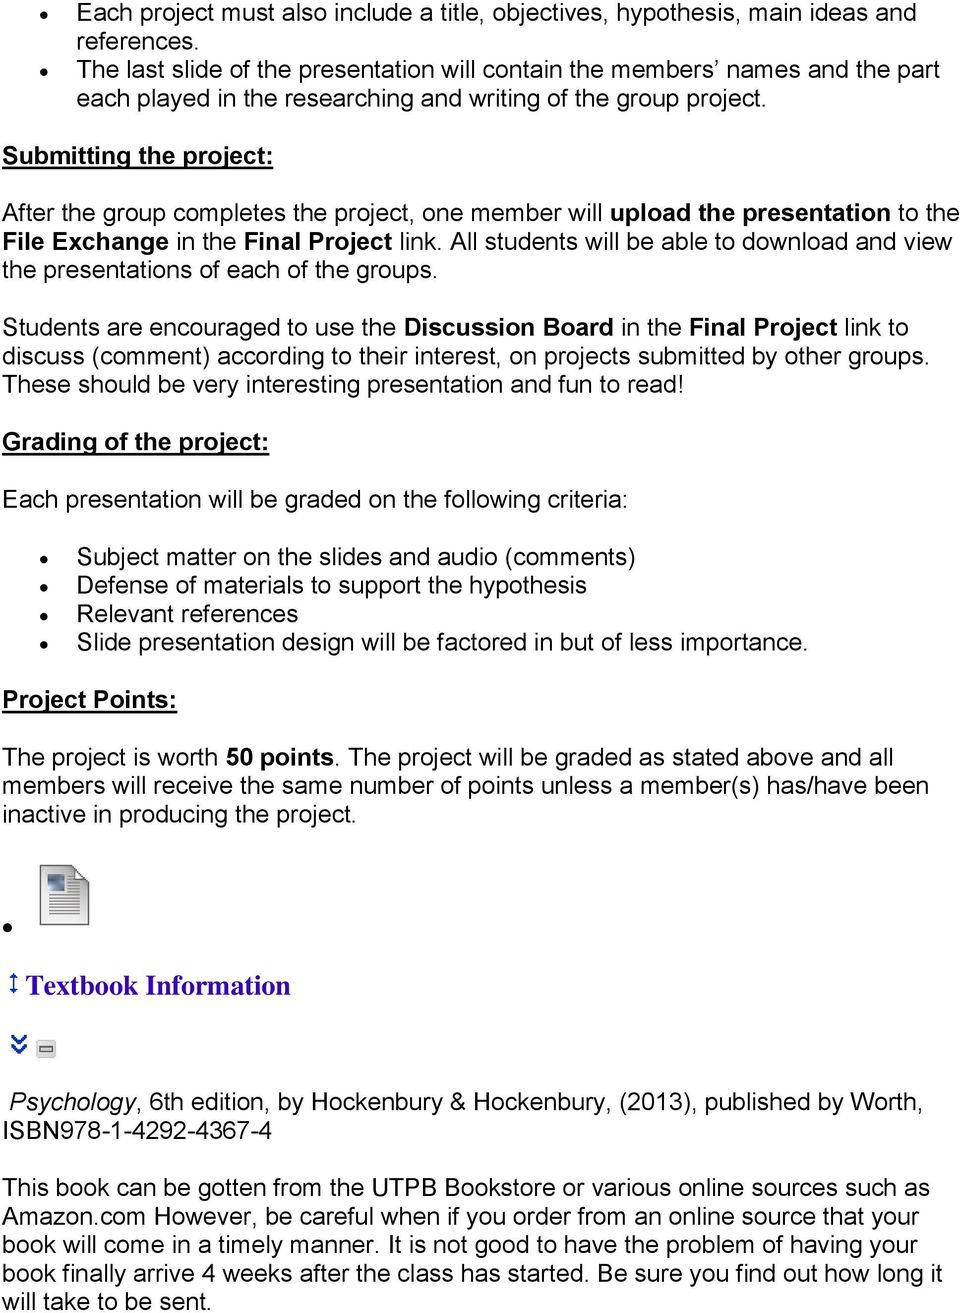 Submitting the project: After the group completes the project, one member will upload the presentation to the File Exchange in the Final Project link.